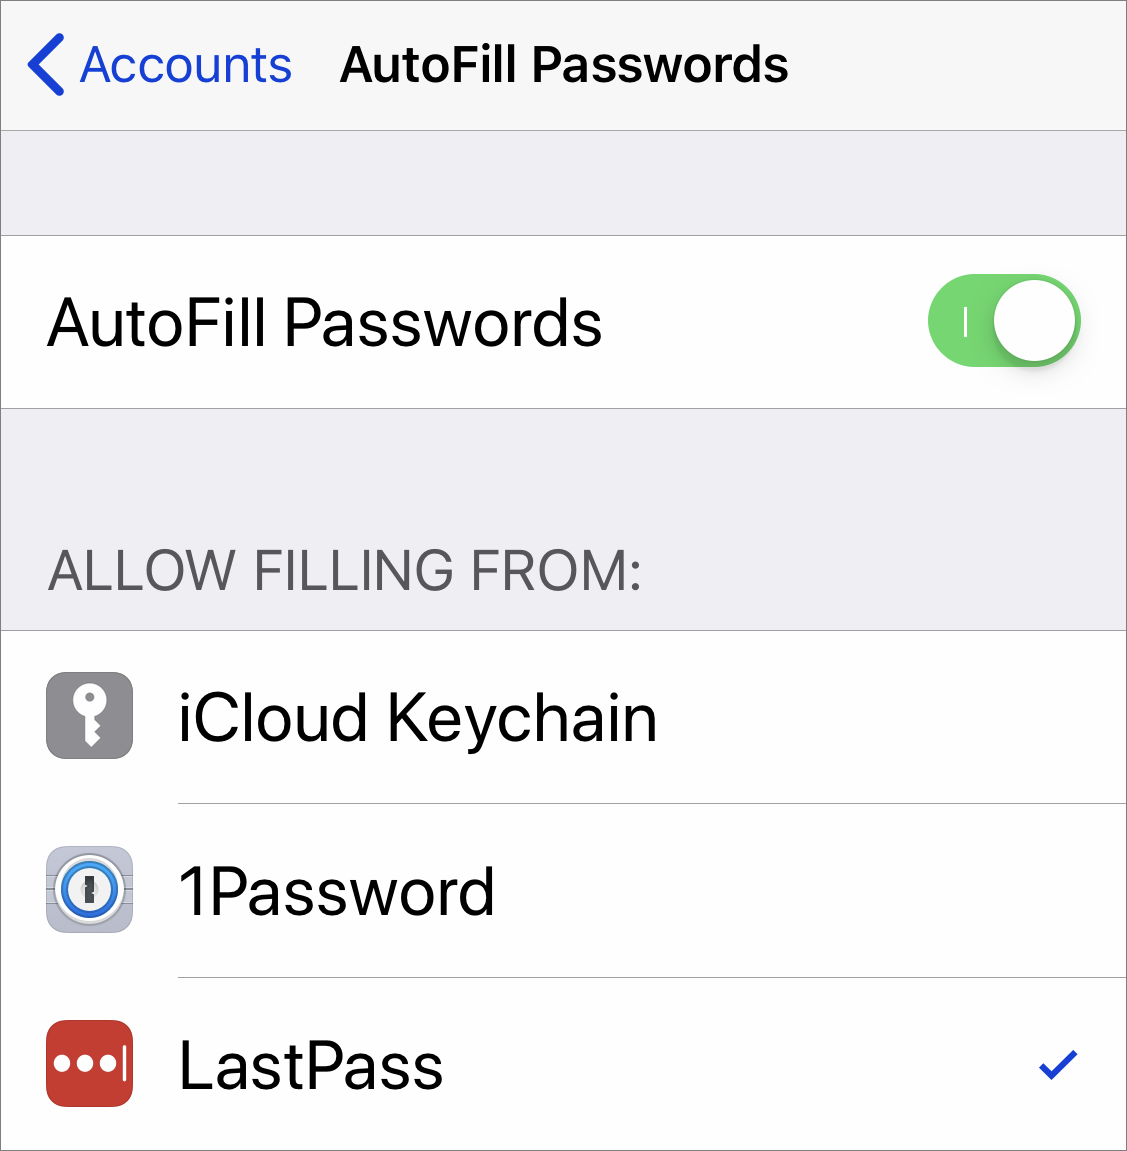 auto fill password image